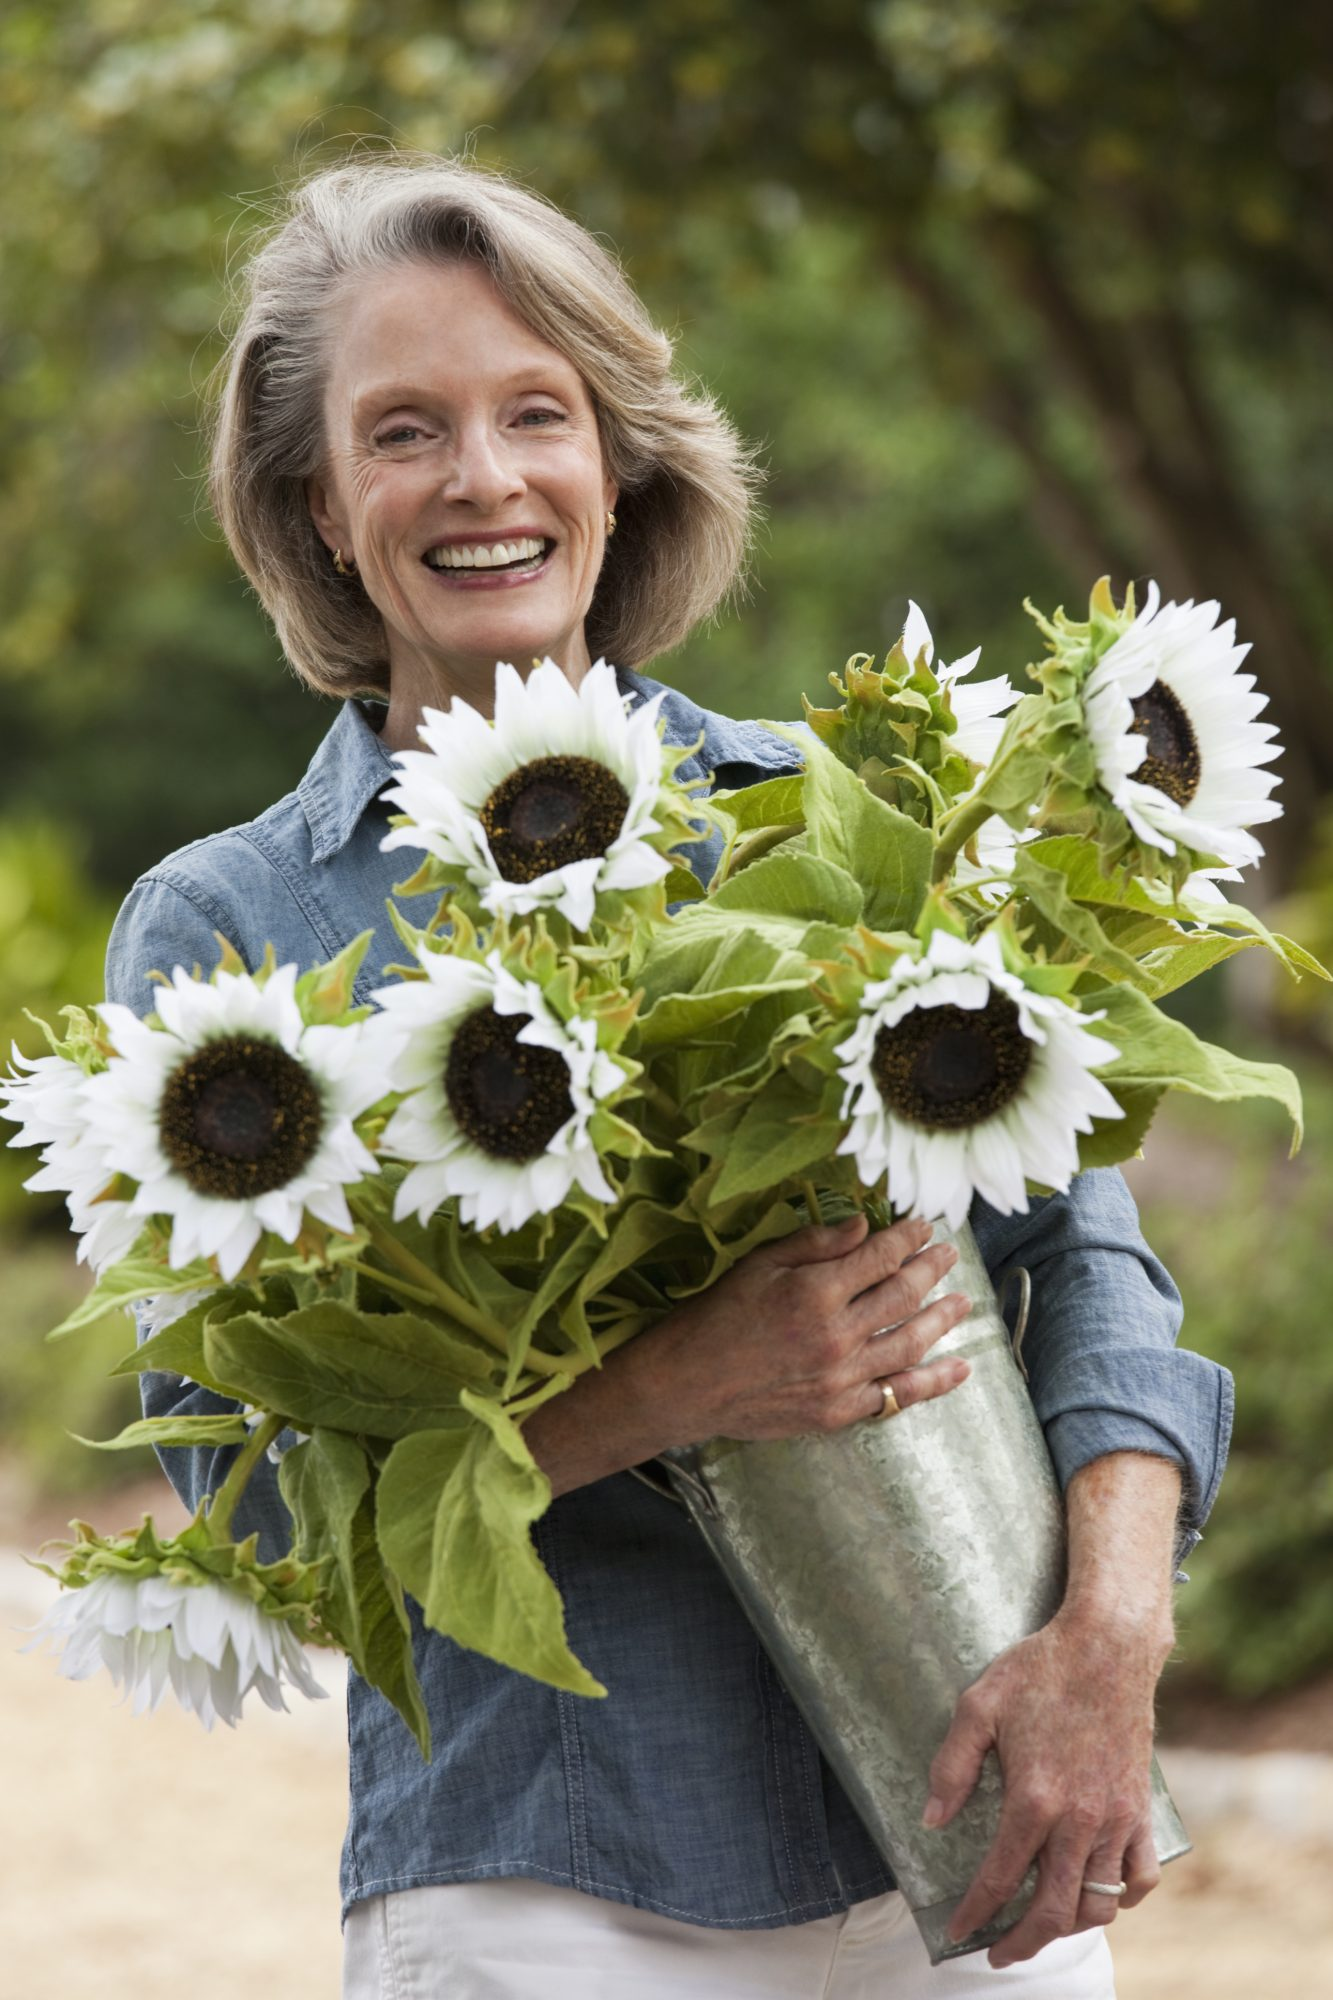 Caucasian woman carrying vase of sunflowers